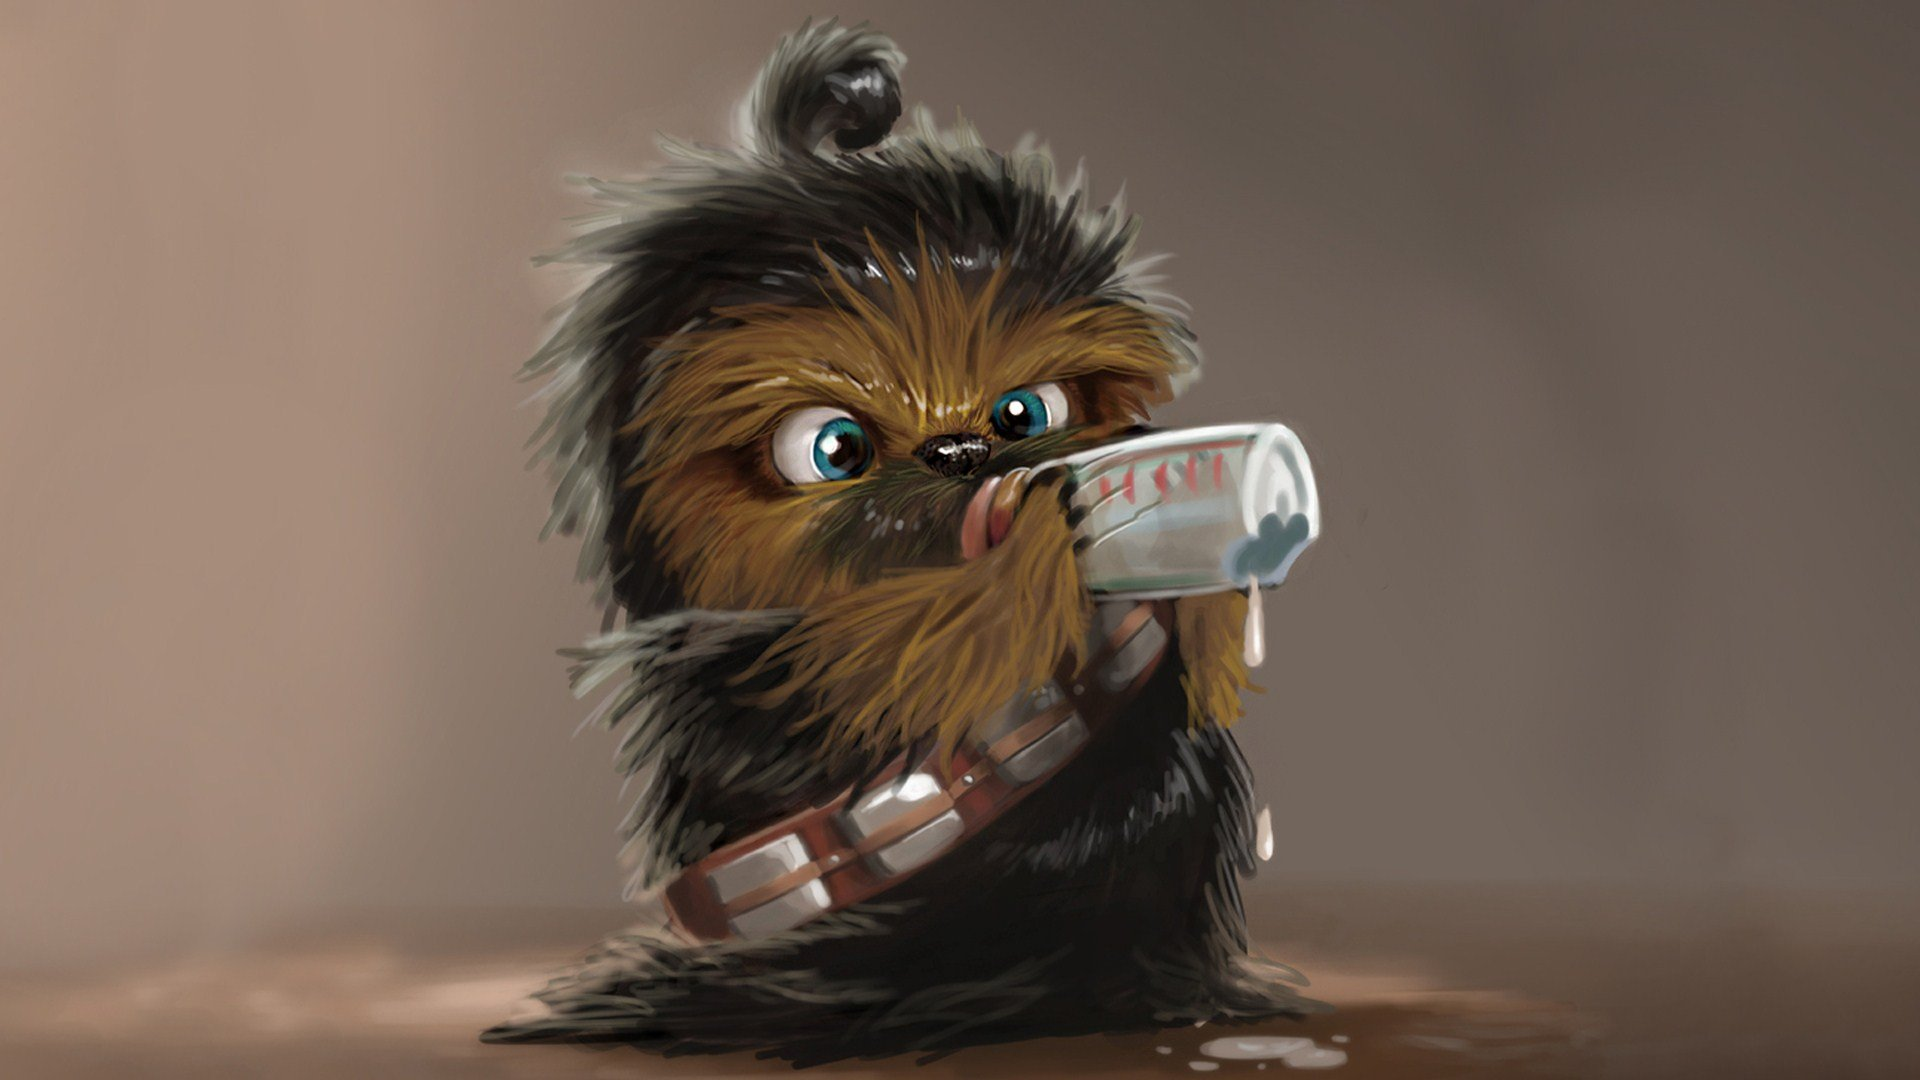 Funny Star Wars Wallpapers 038